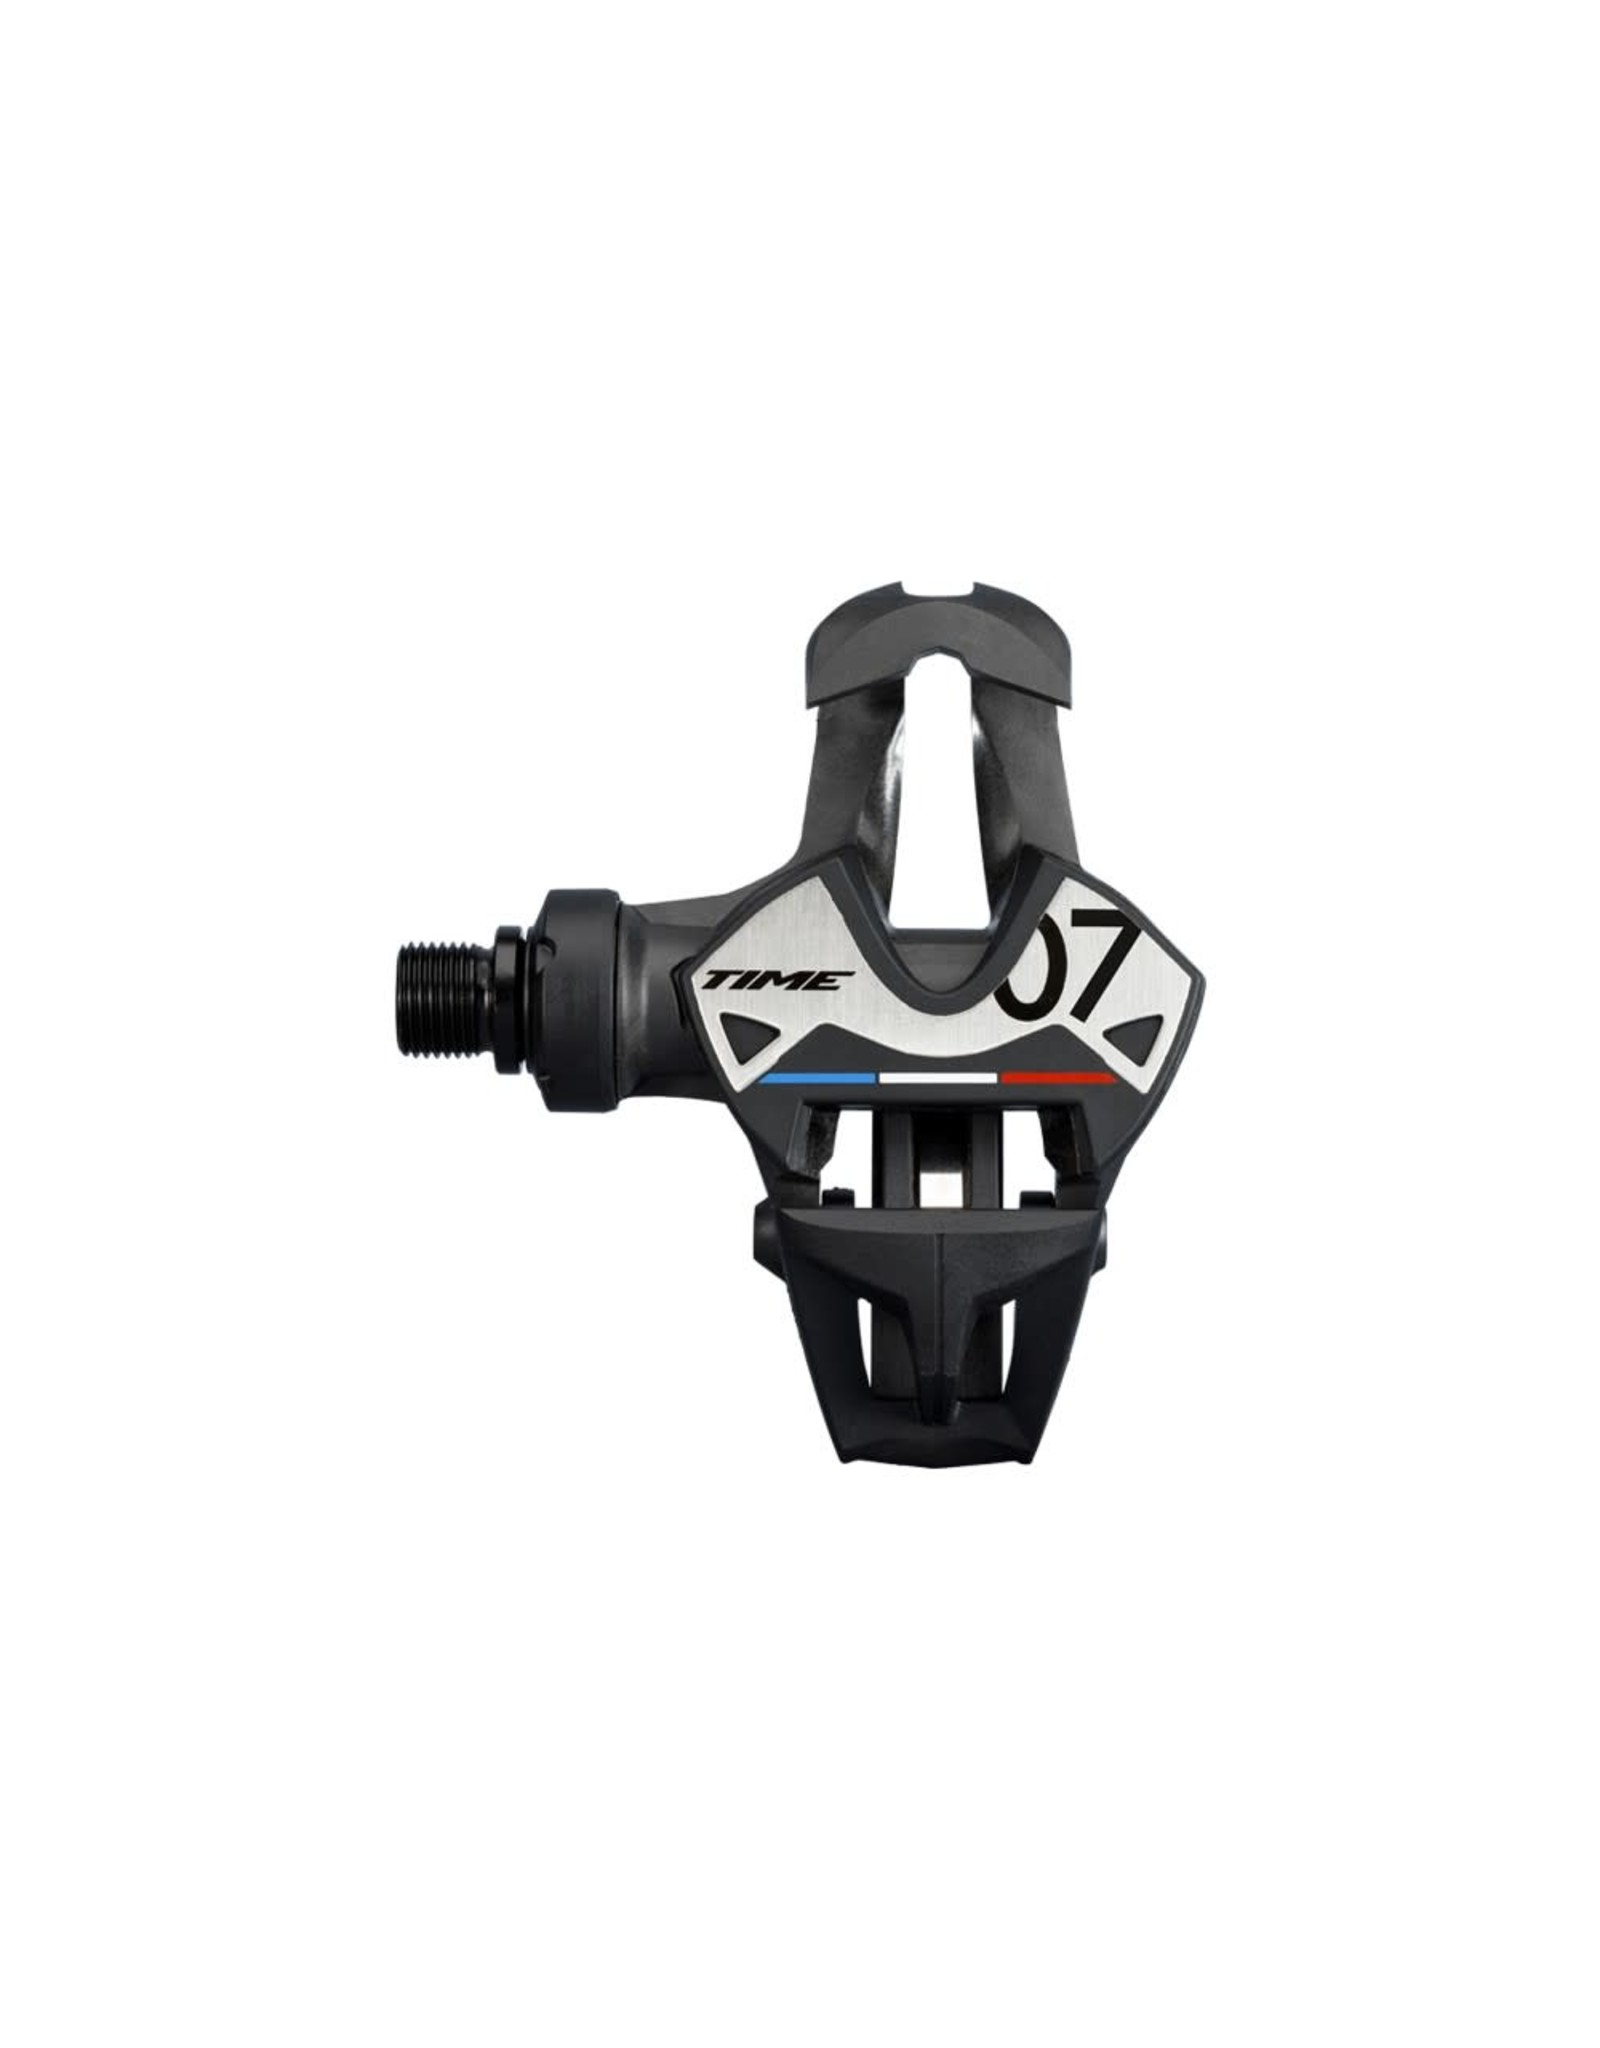 TIME FY19-Xpresso 7 Road Pedals